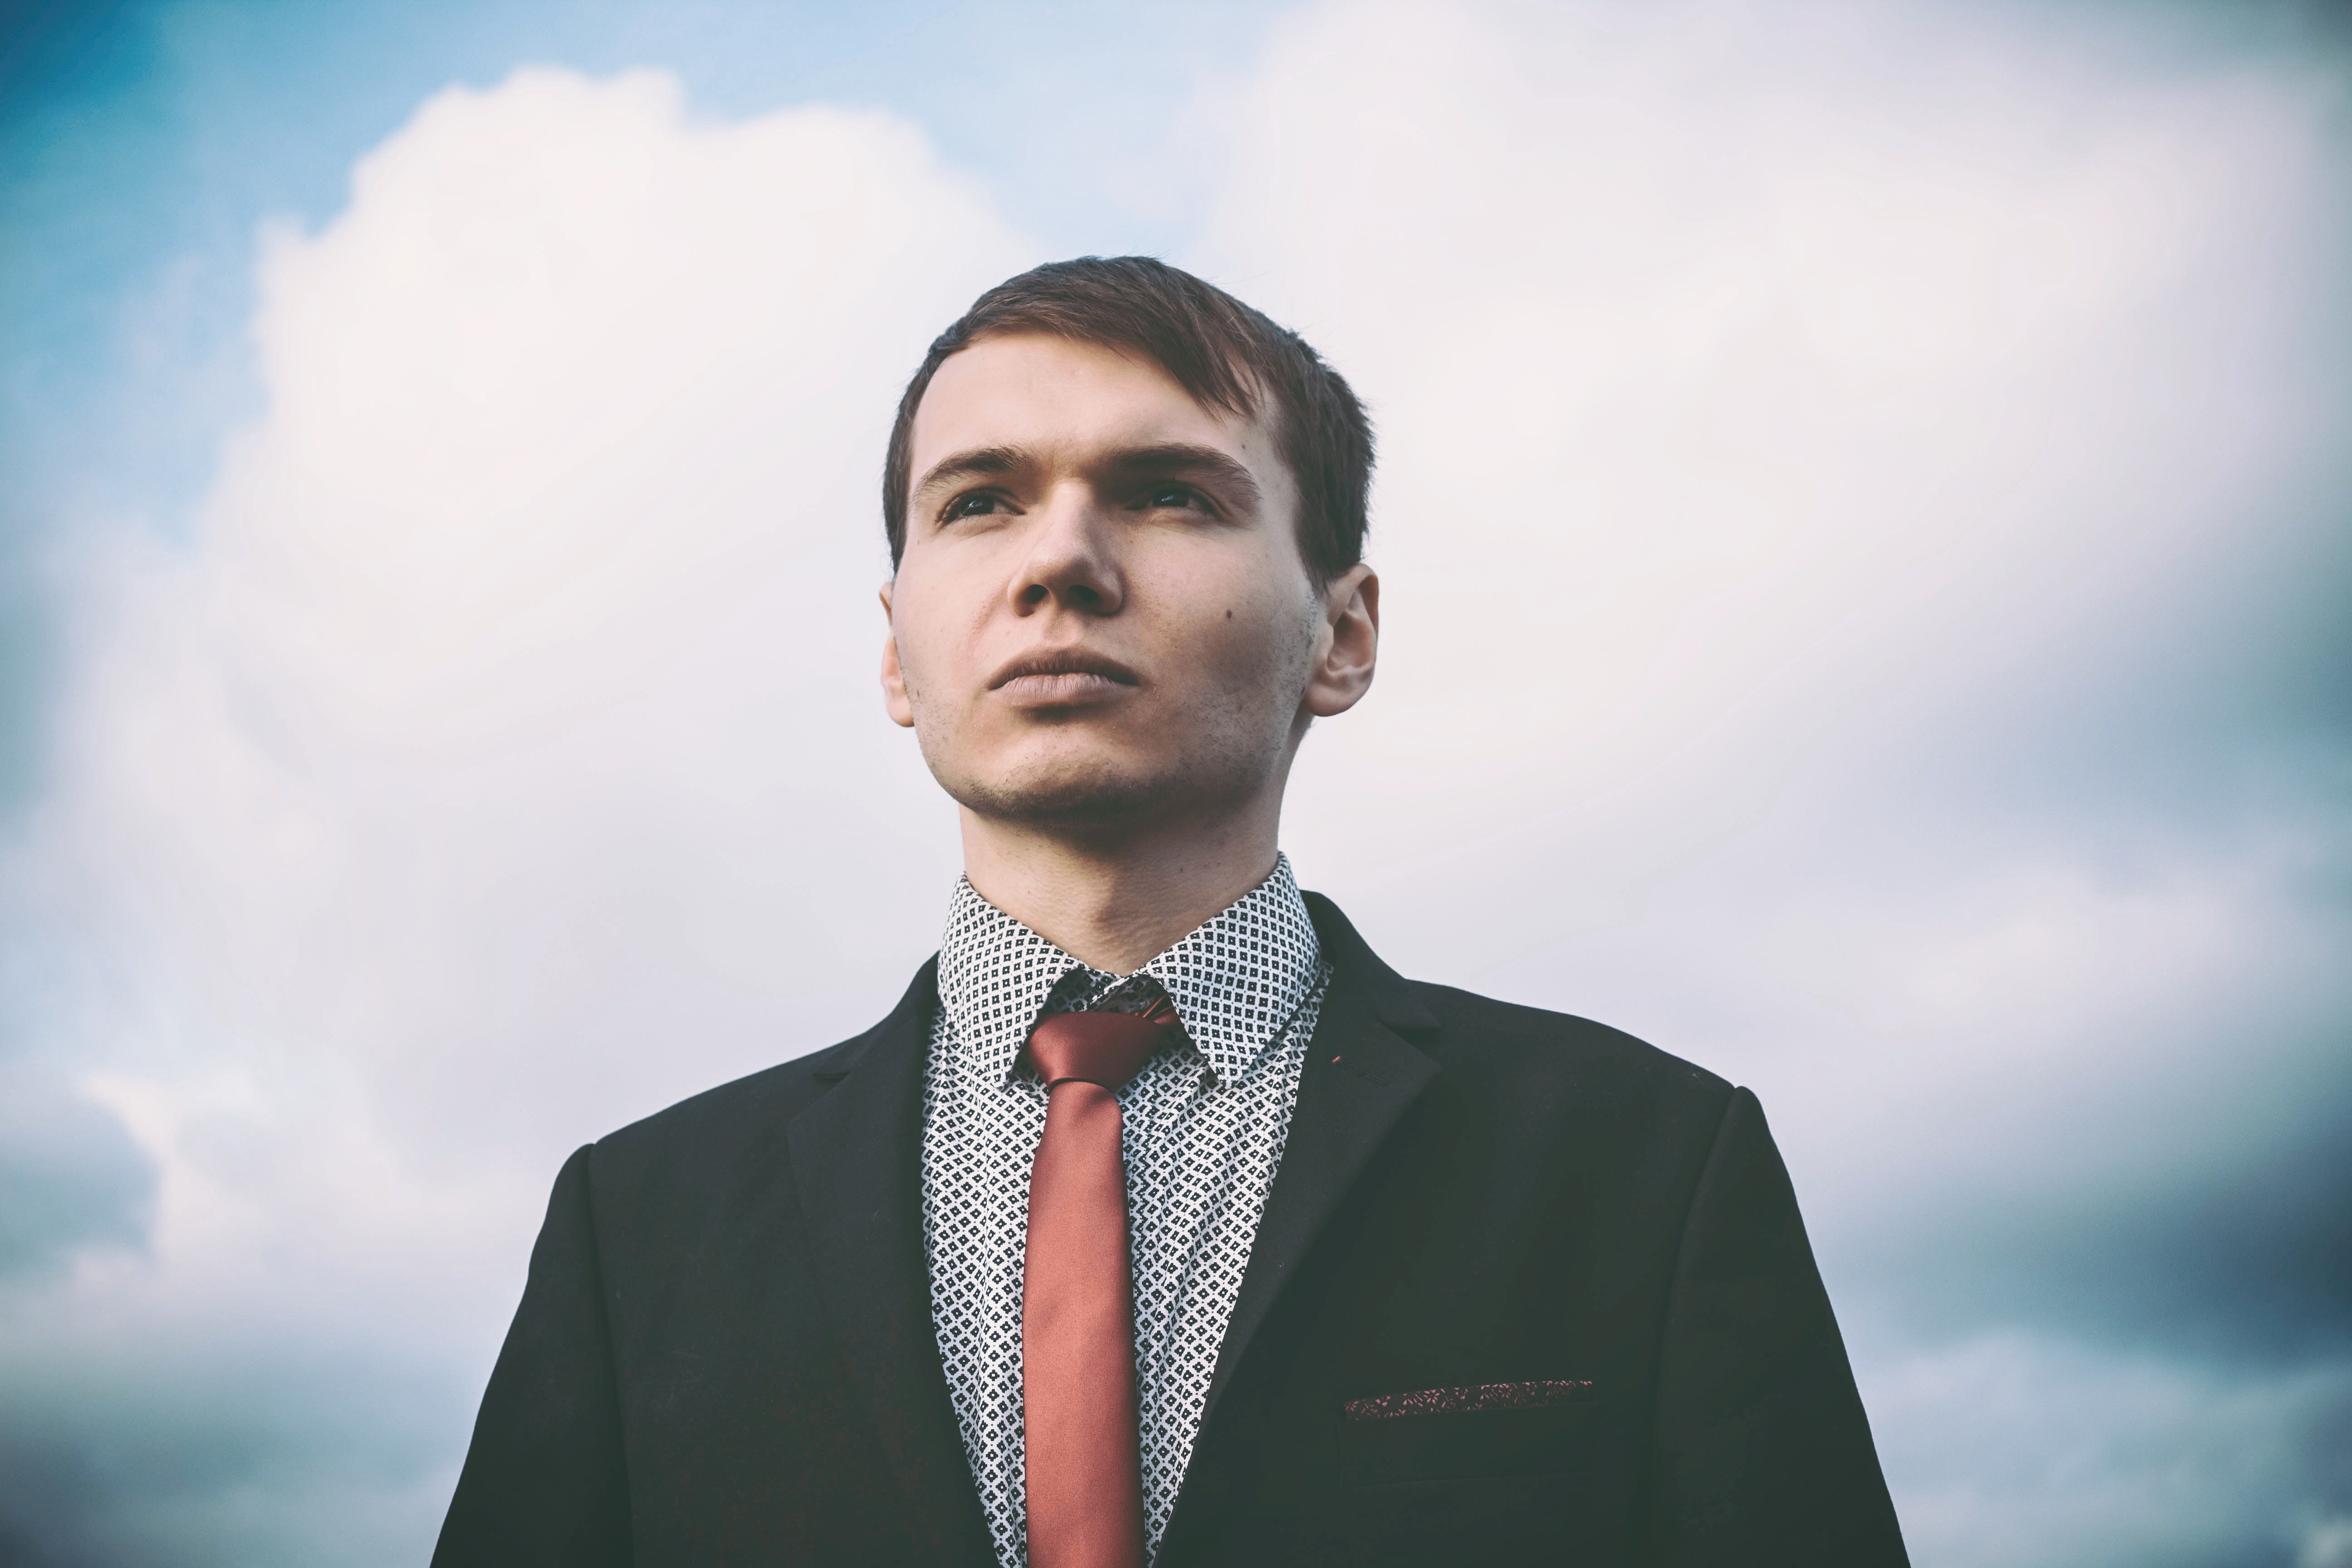 Portrait of young man against sky photo